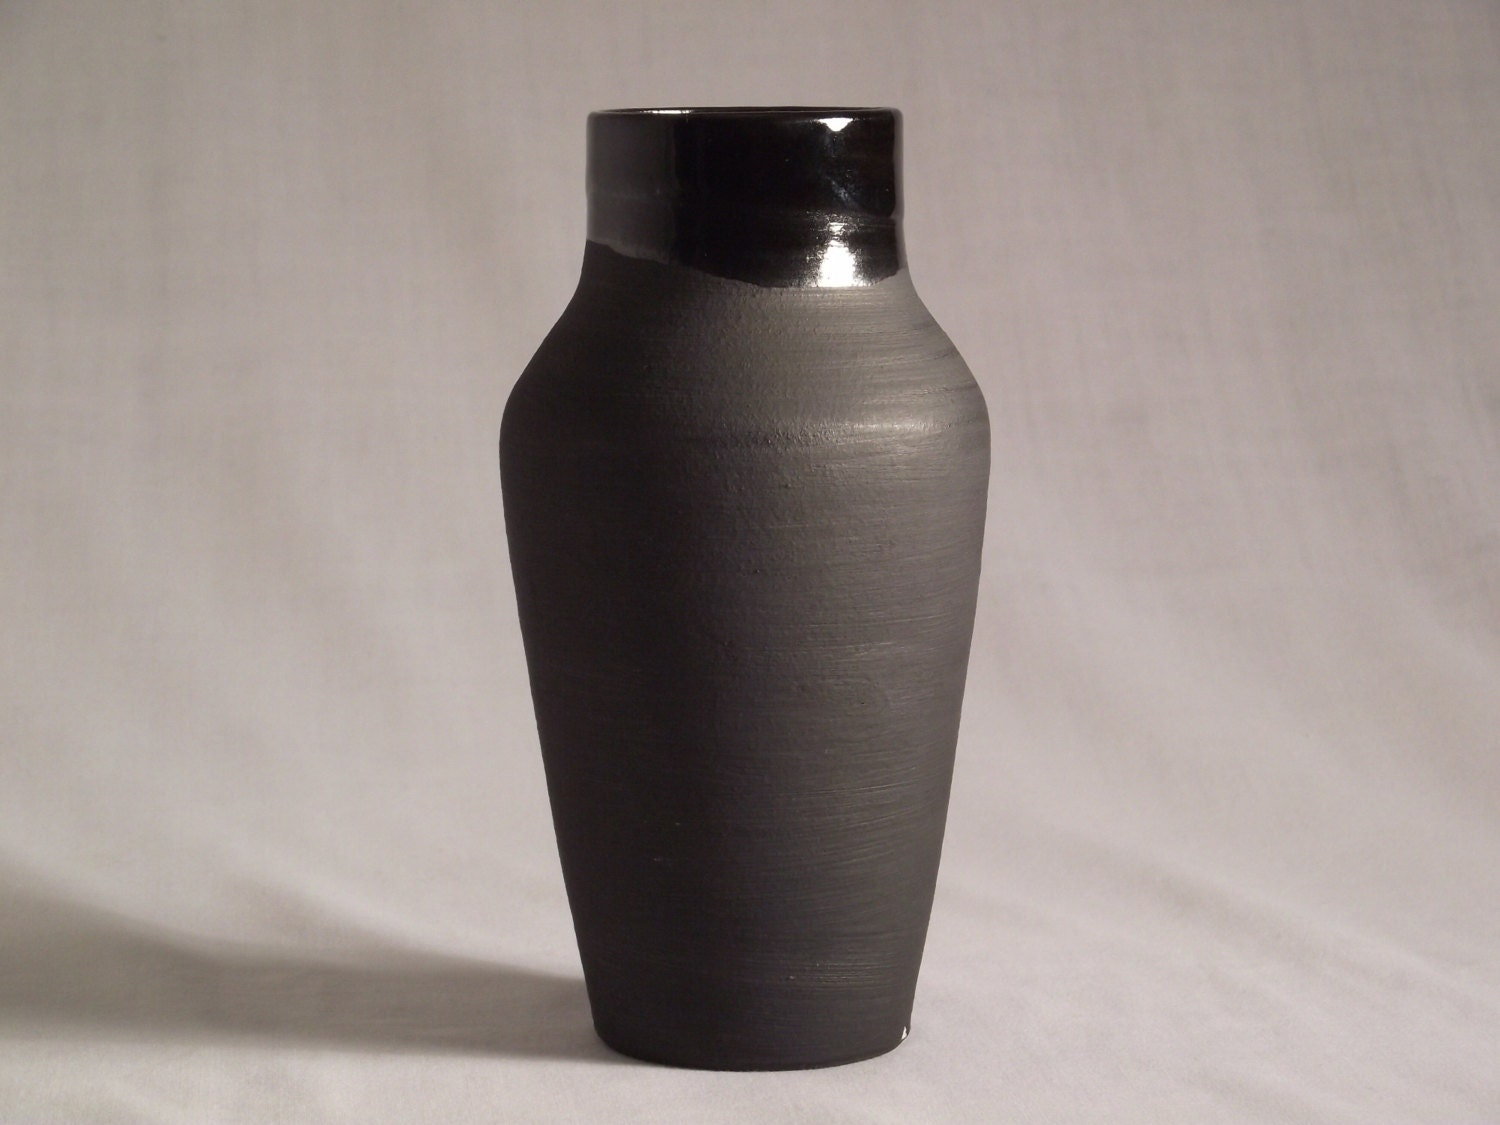 Ceramic Vase Black Matte And Glossy 6in Tall Home Decor